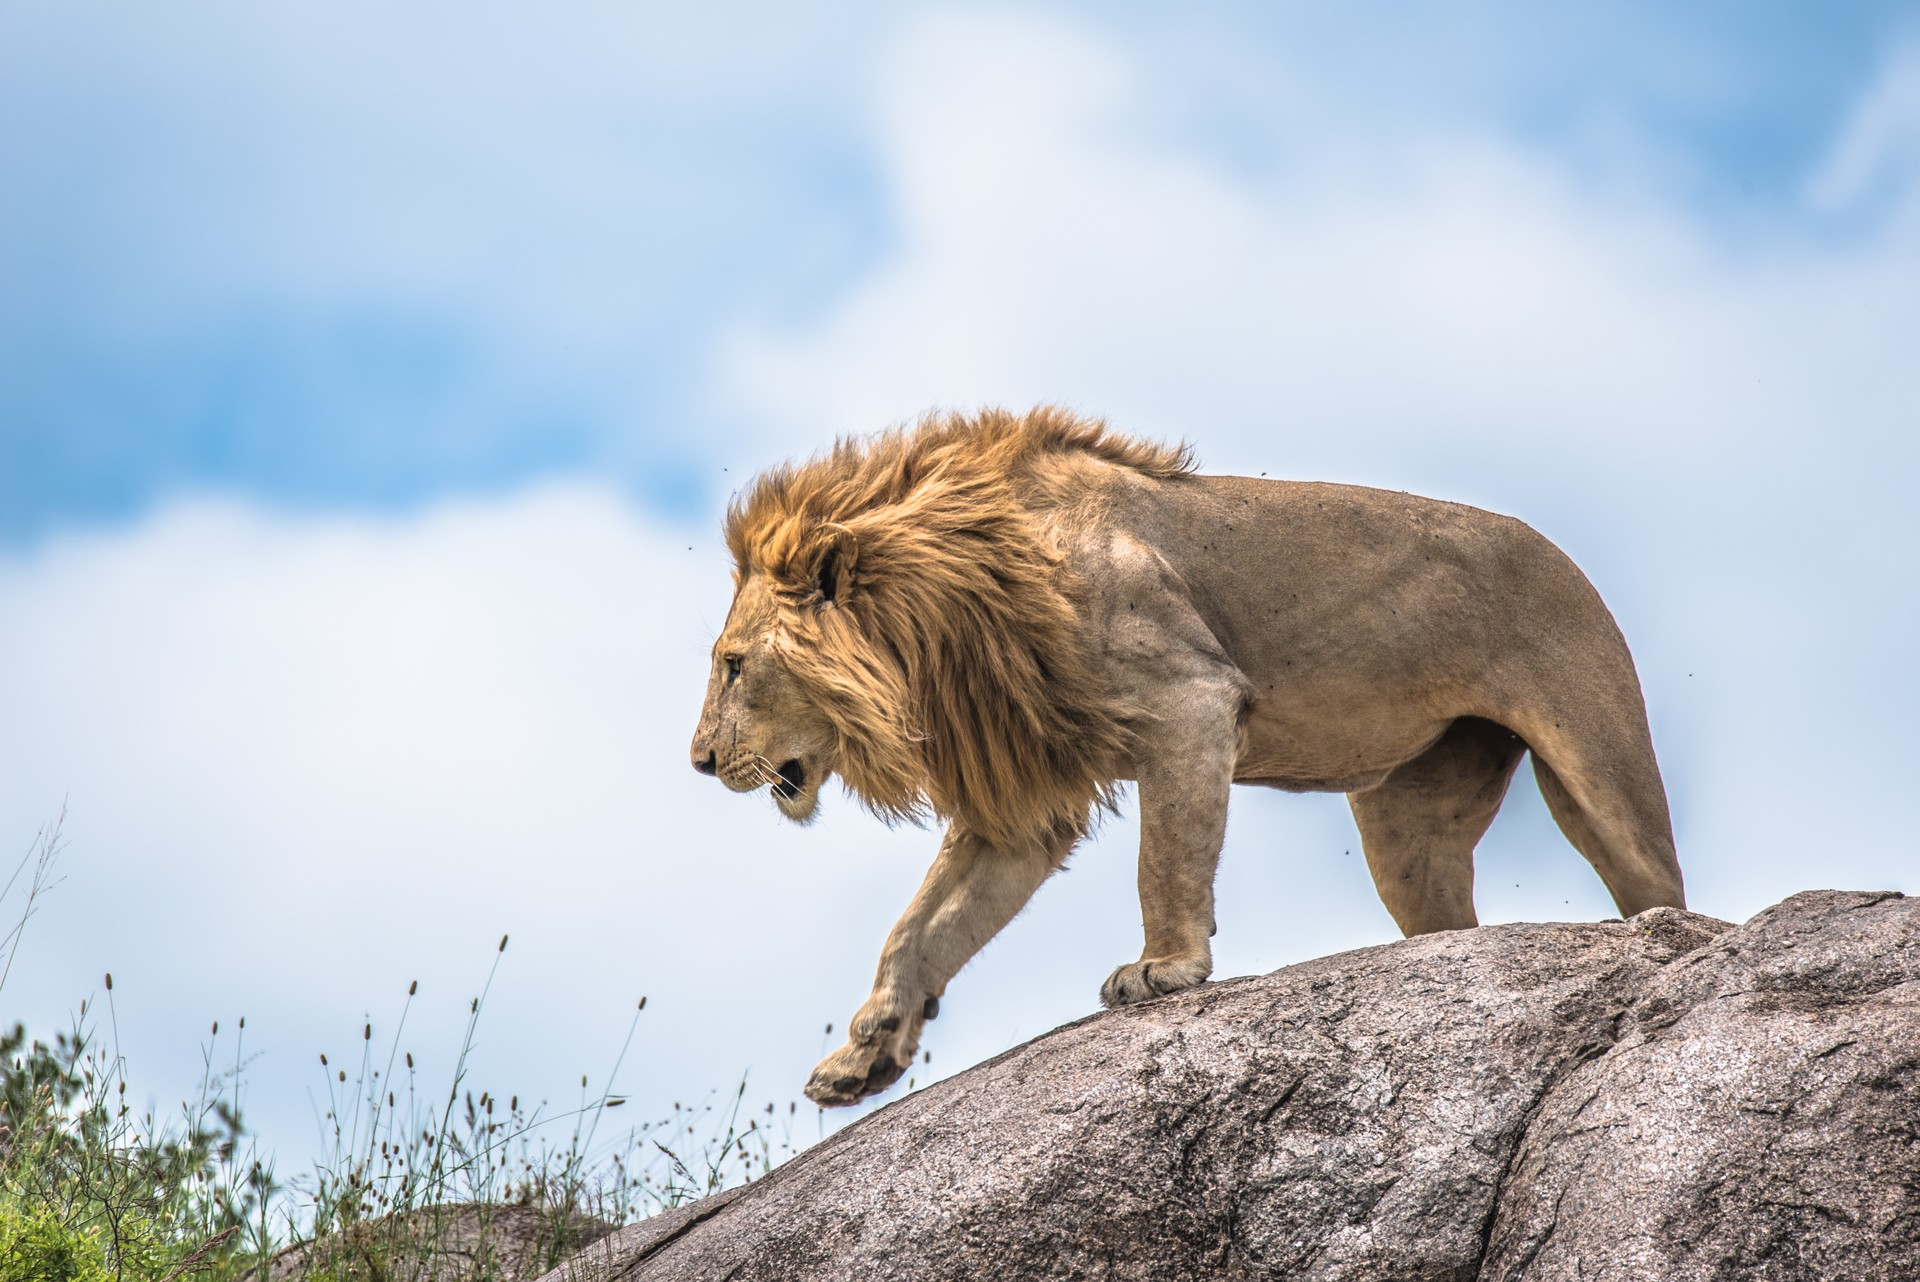 Male lion in Serengeti, Tanzania